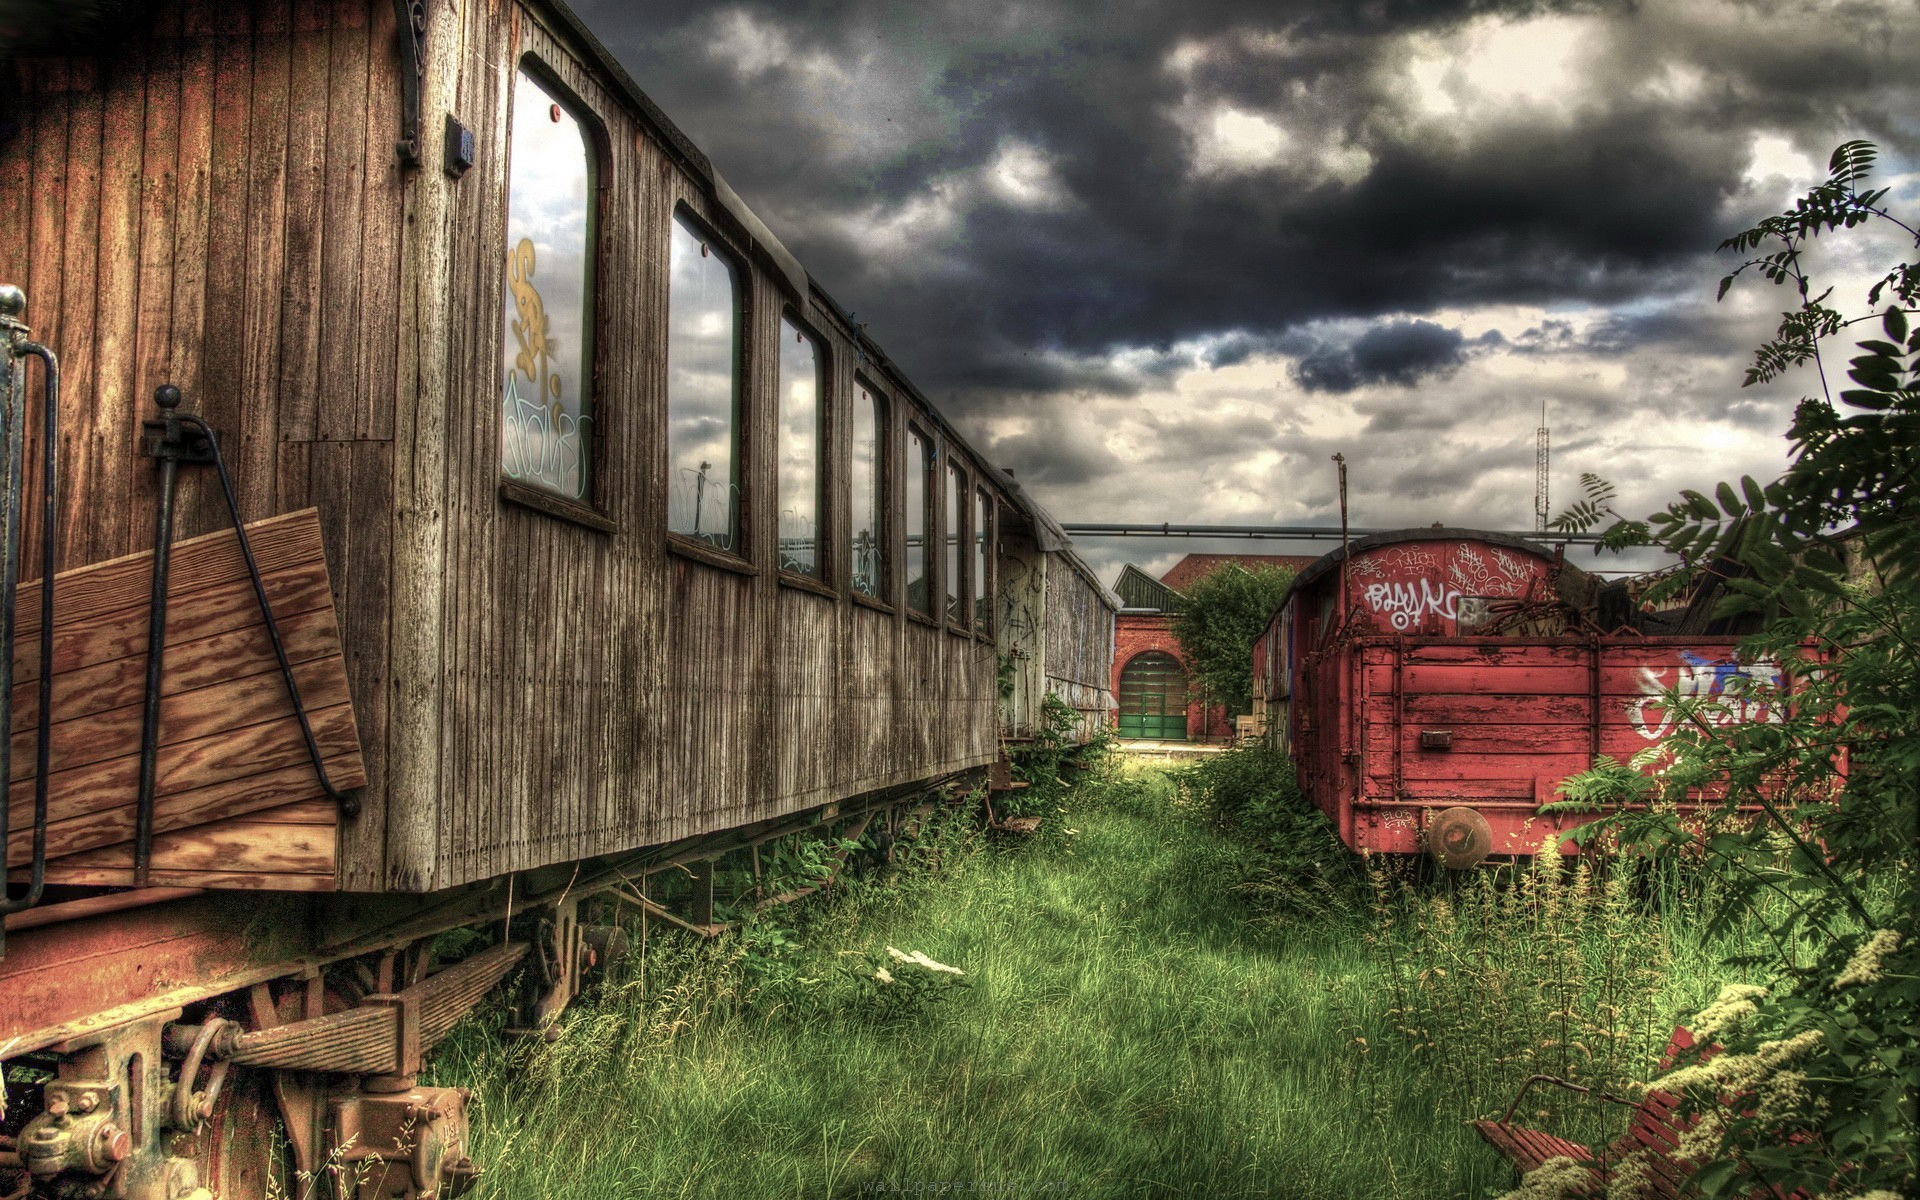 trains-hdr-photography